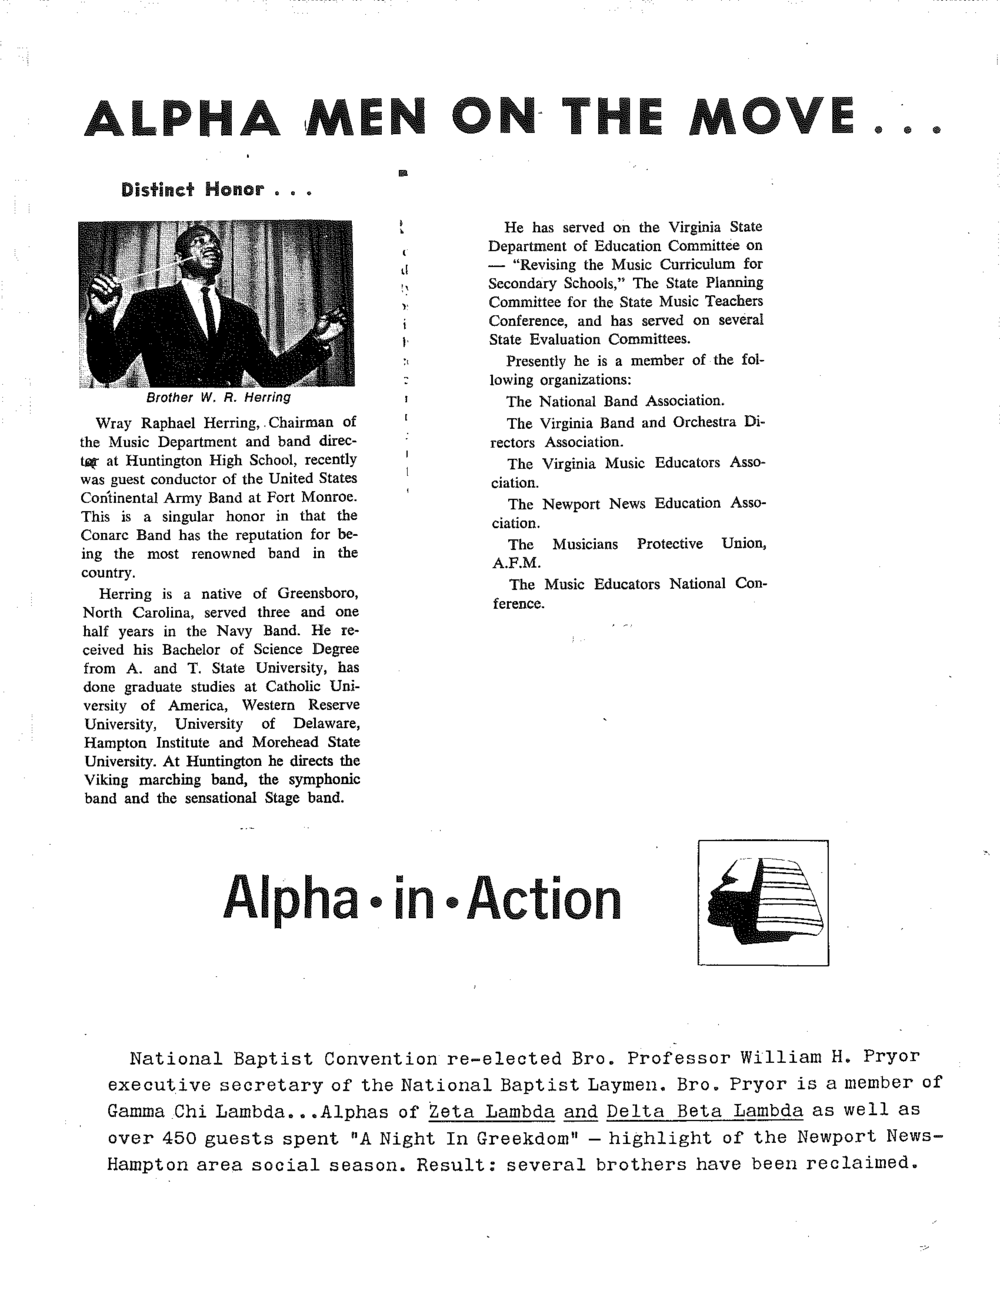 Zeta Lambda 1960s - Alpha Men on the Move, Bro. Wray Herring-1.png